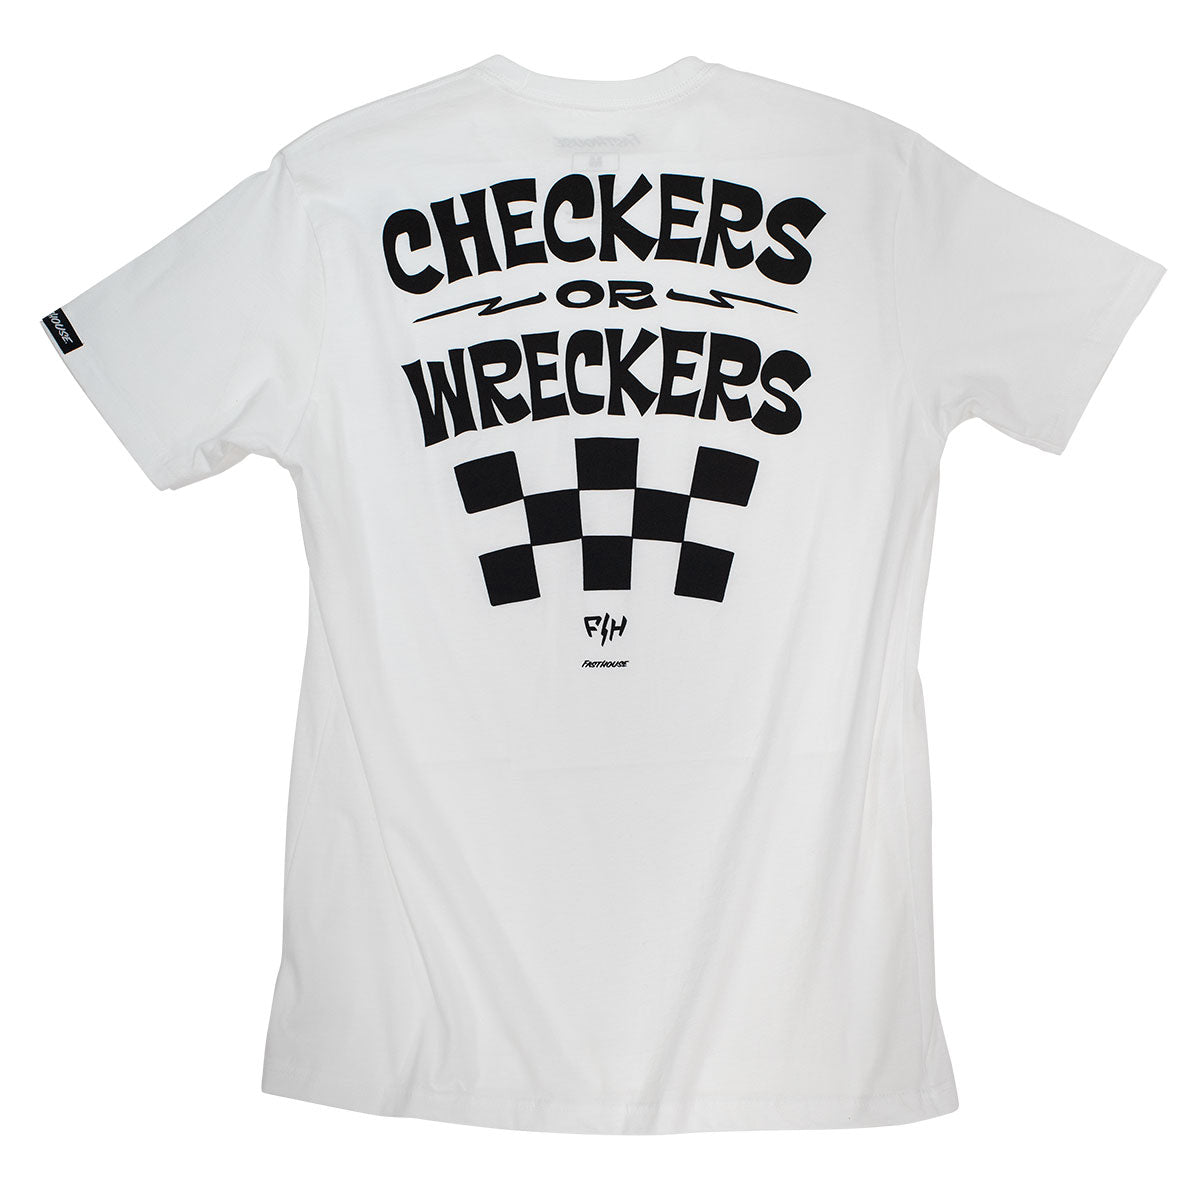 Wreckers Tee - White